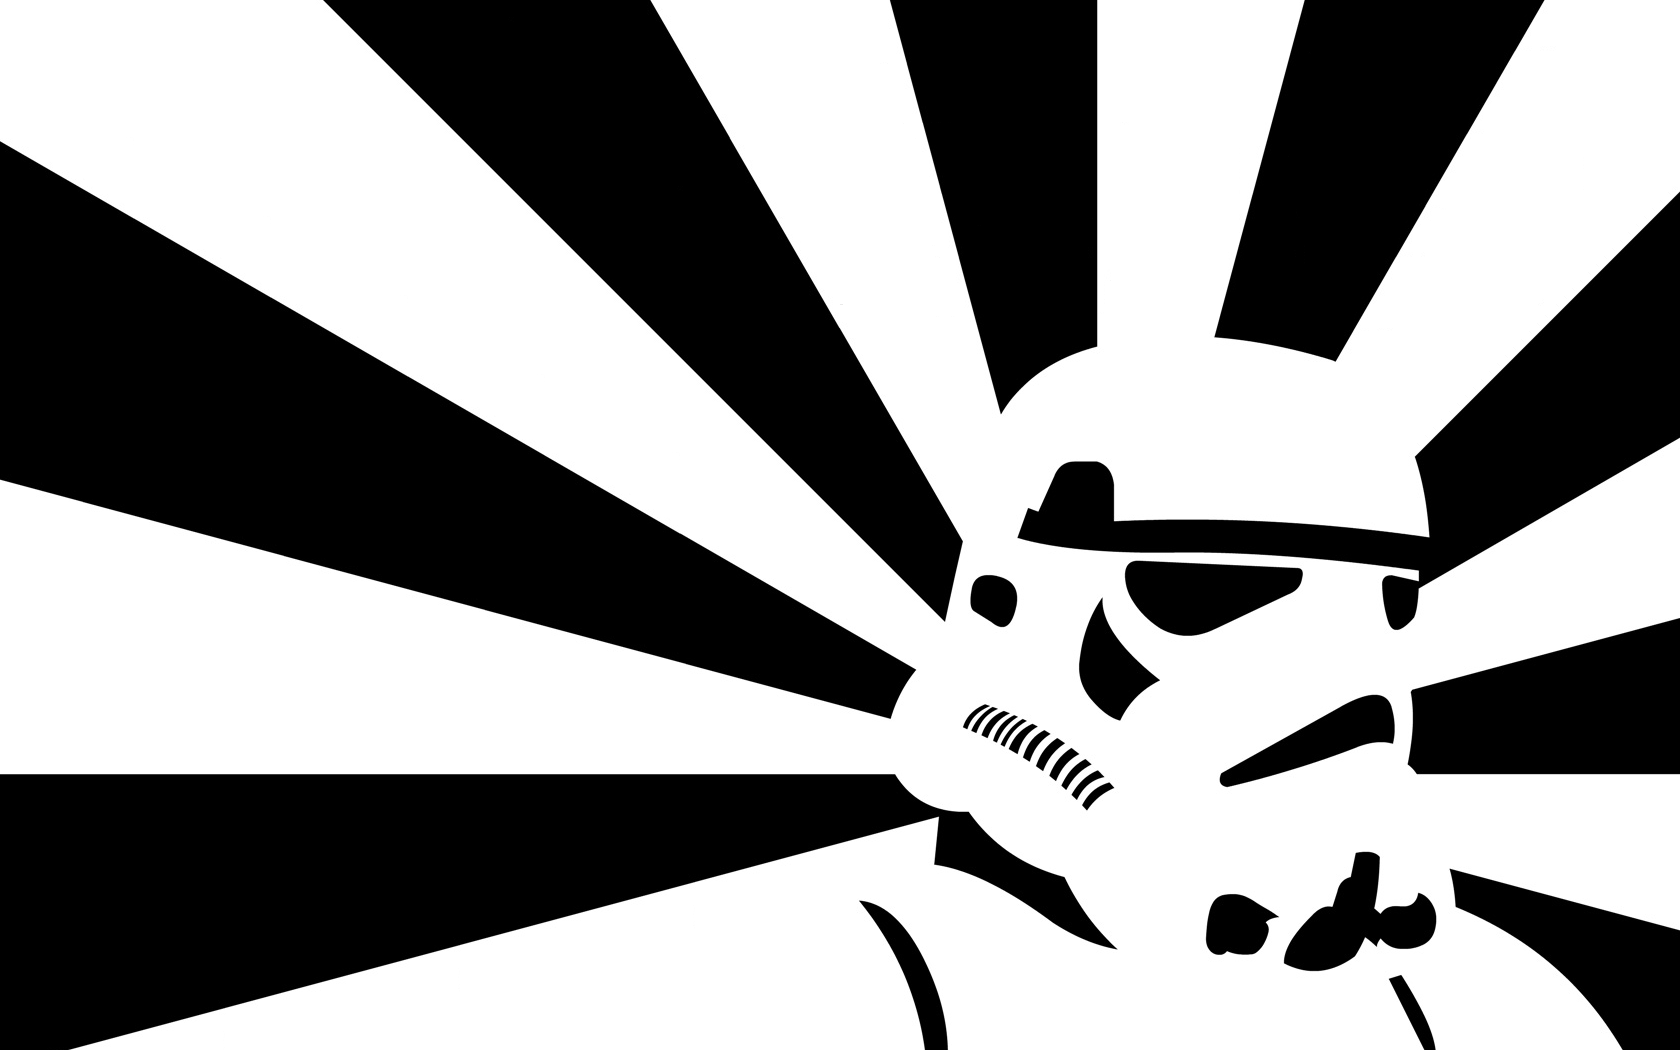 Storm Trooper 2 by GraffitiWatcher on DeviantArt